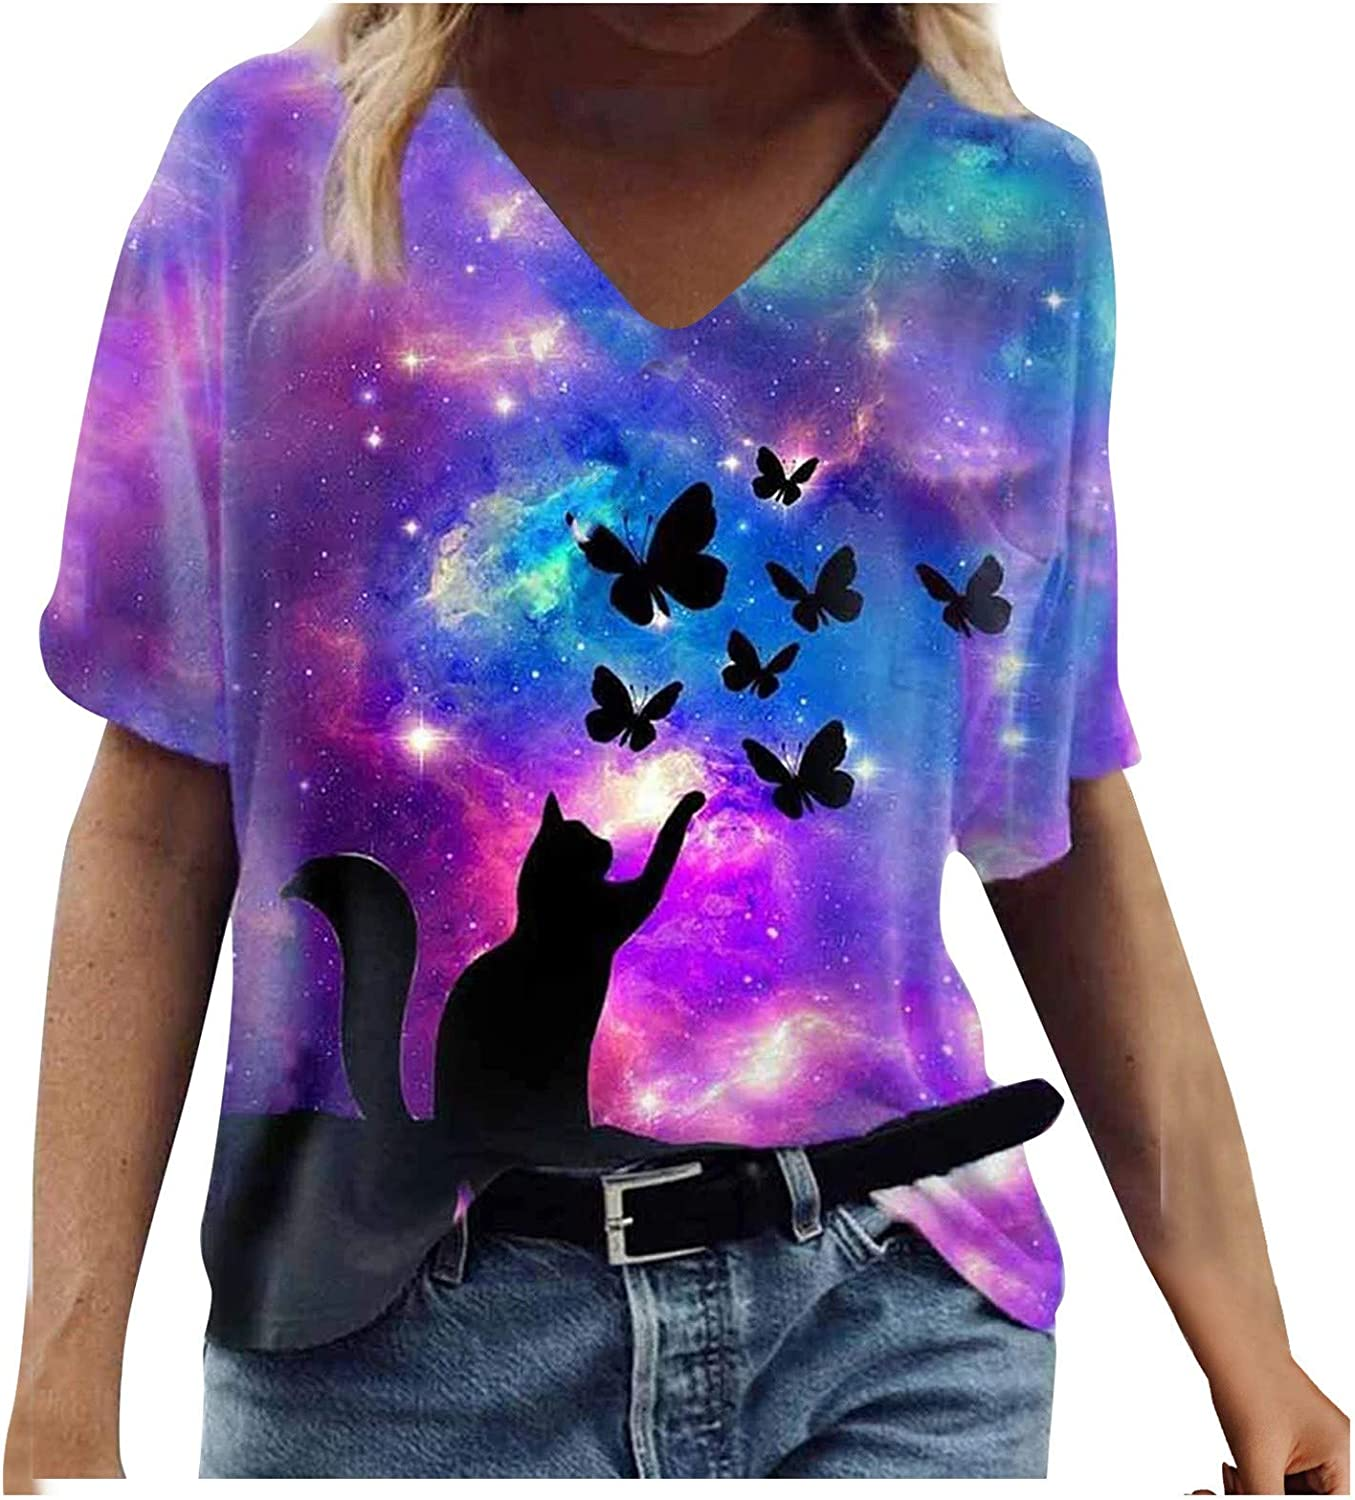 Fankle Plus Size Tie Dye Shirt for Women Short Sleeve 3D Graphic Tees Summer Casual V-Neck Tops Tee T-Shirt Blouse